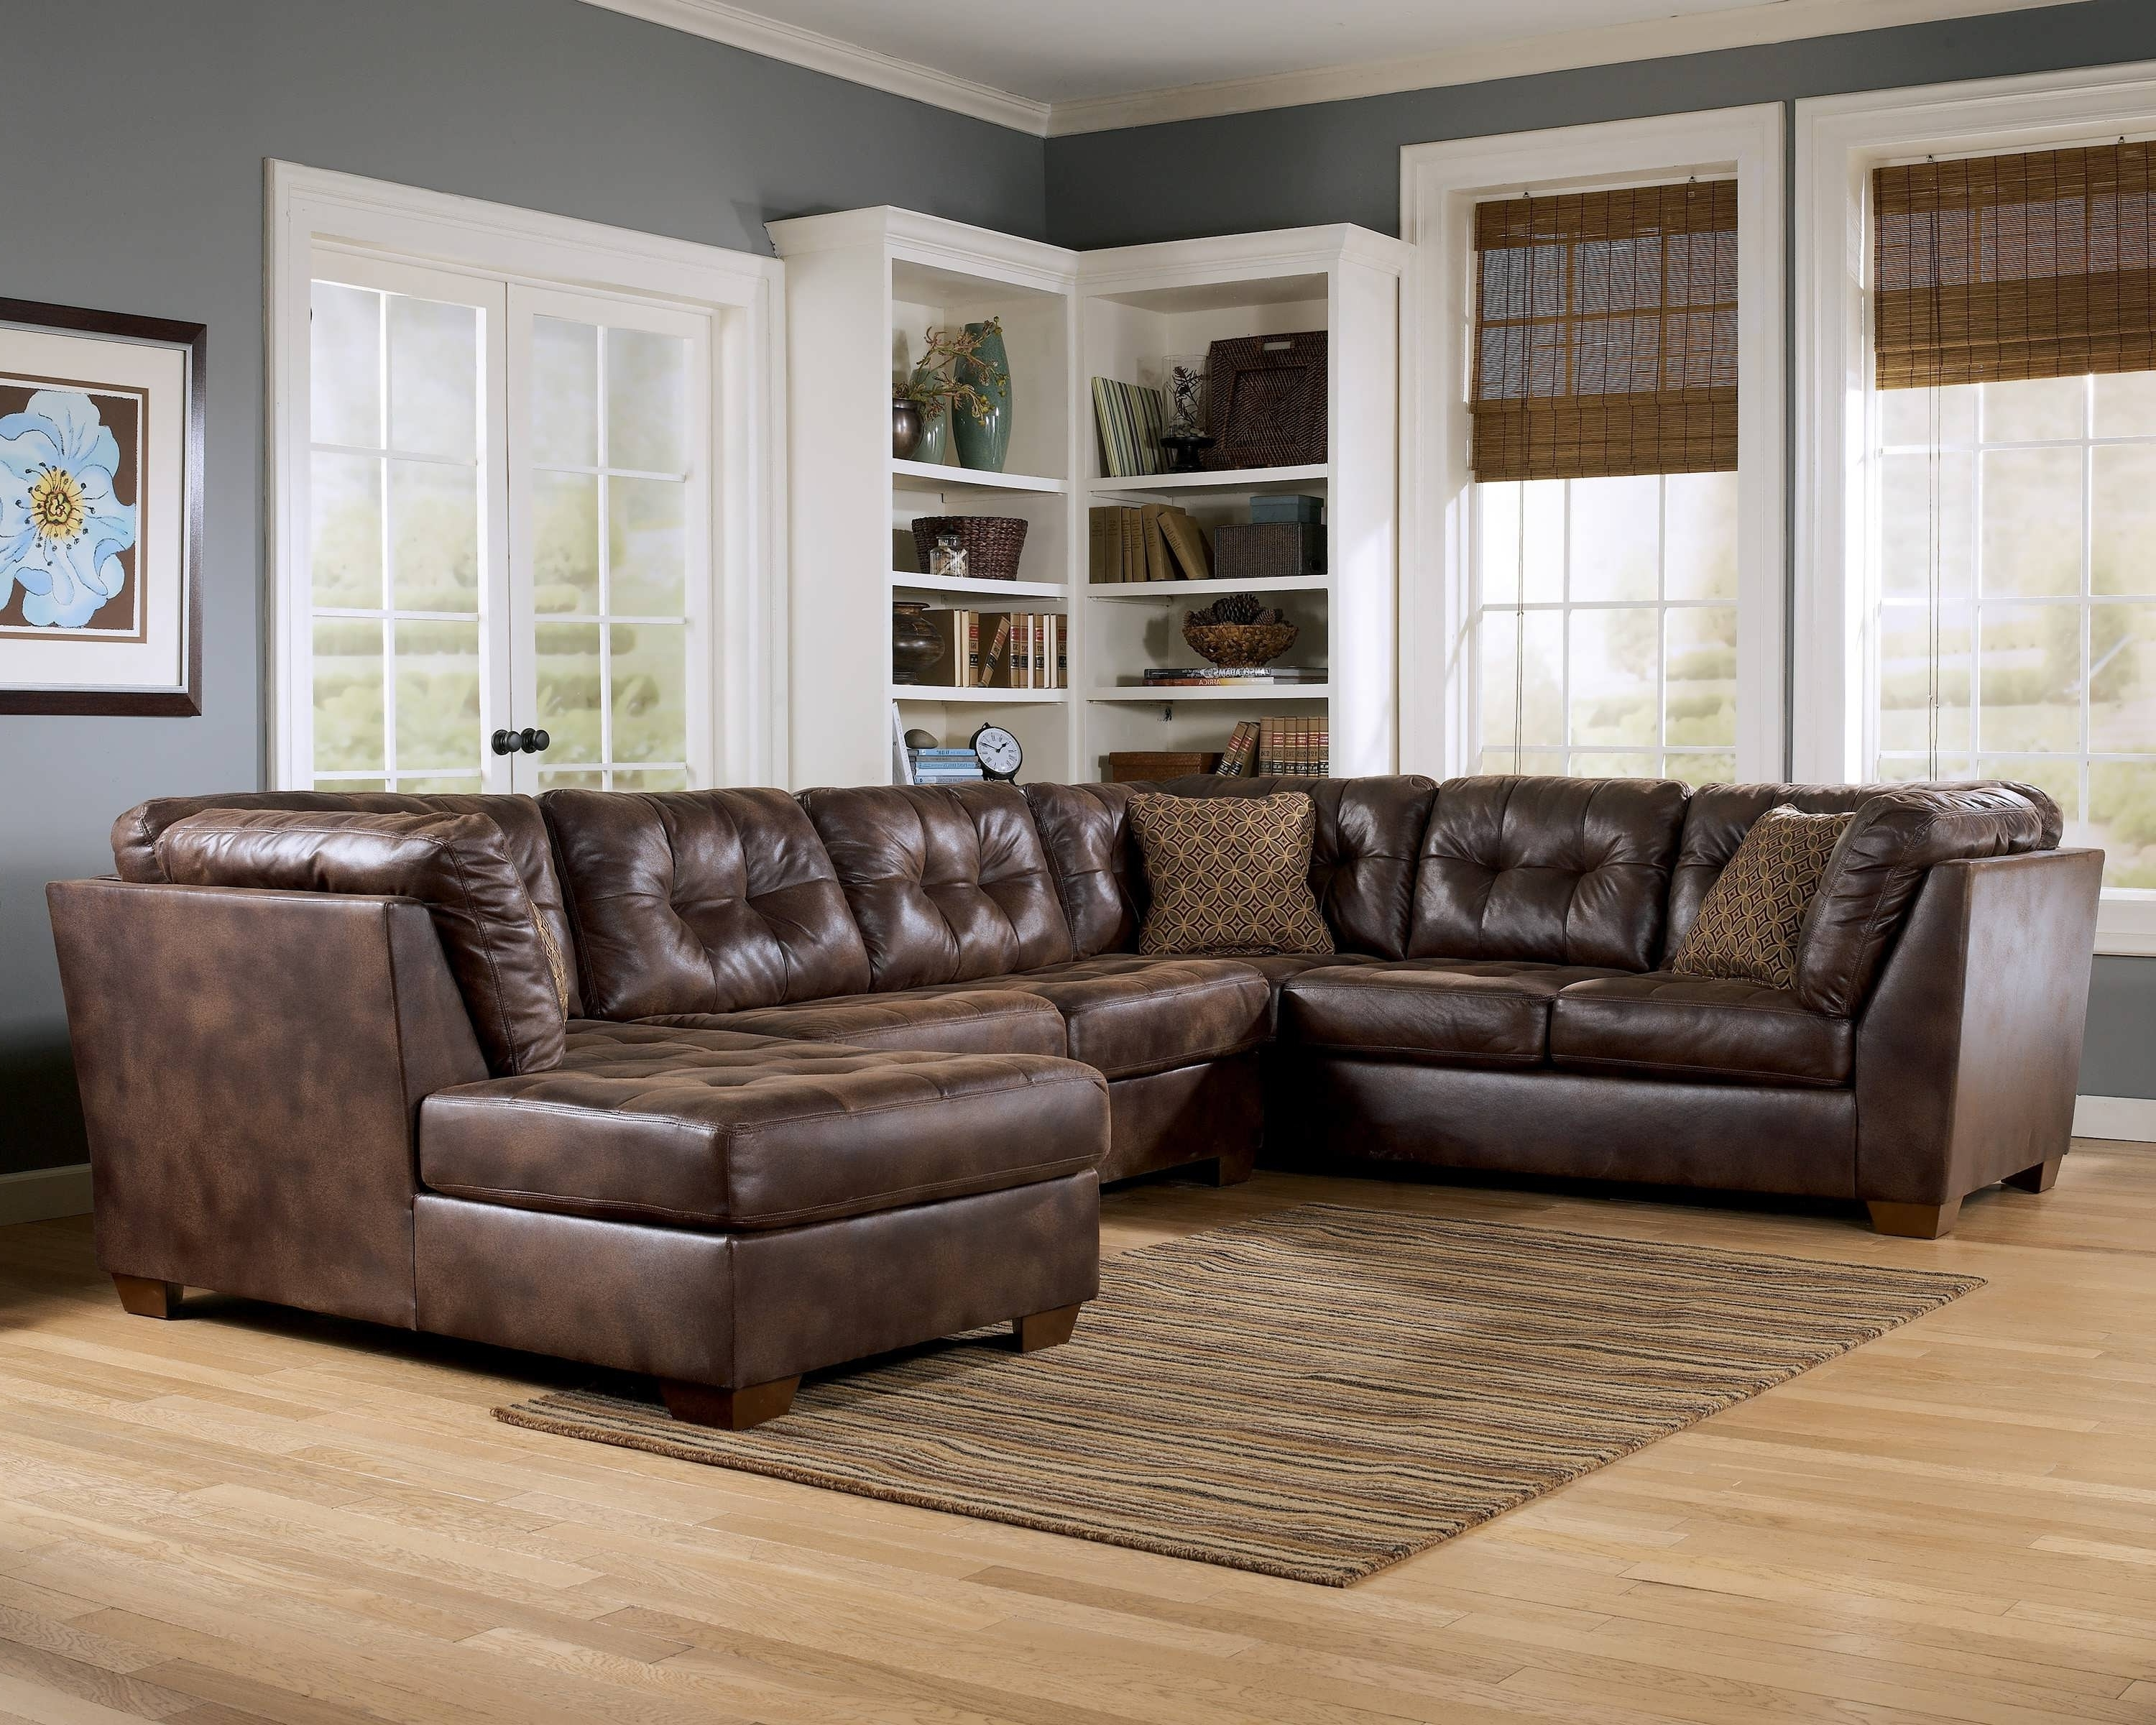 Memphis Tn Sectional Sofas For Most Up To Date Sofa Leather Sectional Sofas Collection Of Brown Black Couch For (View 3 of 20)